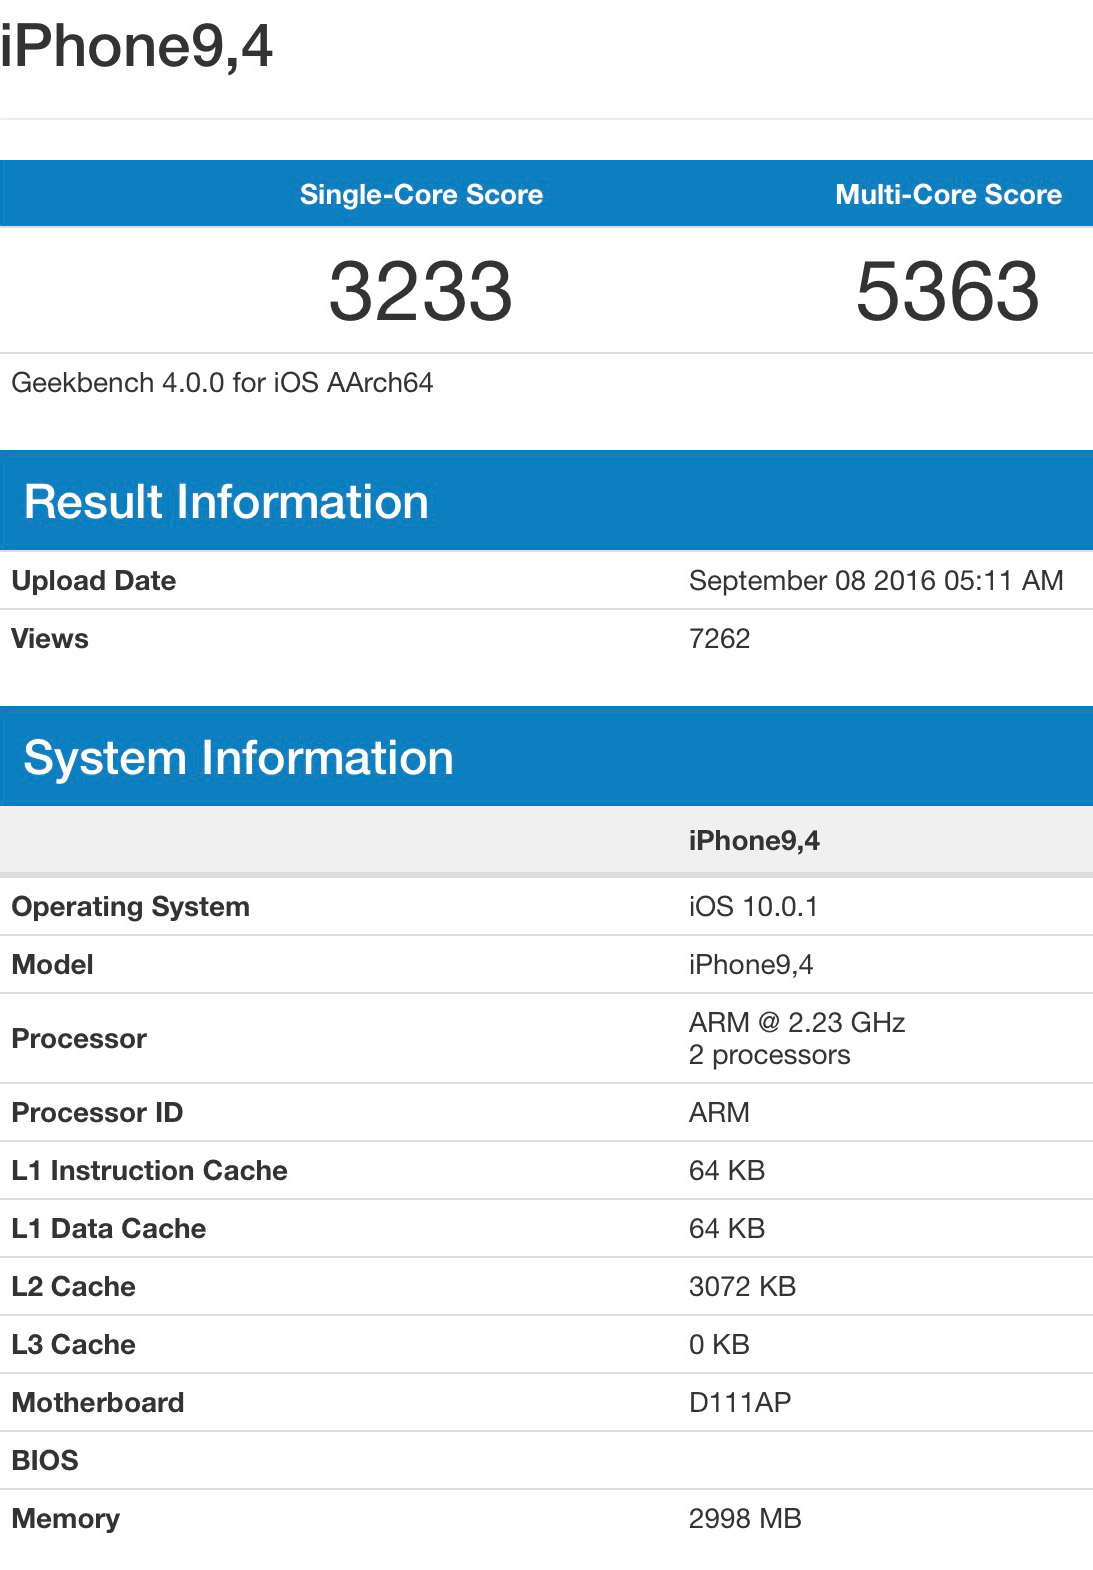 Geekbench Test for iPhone 7 Plus